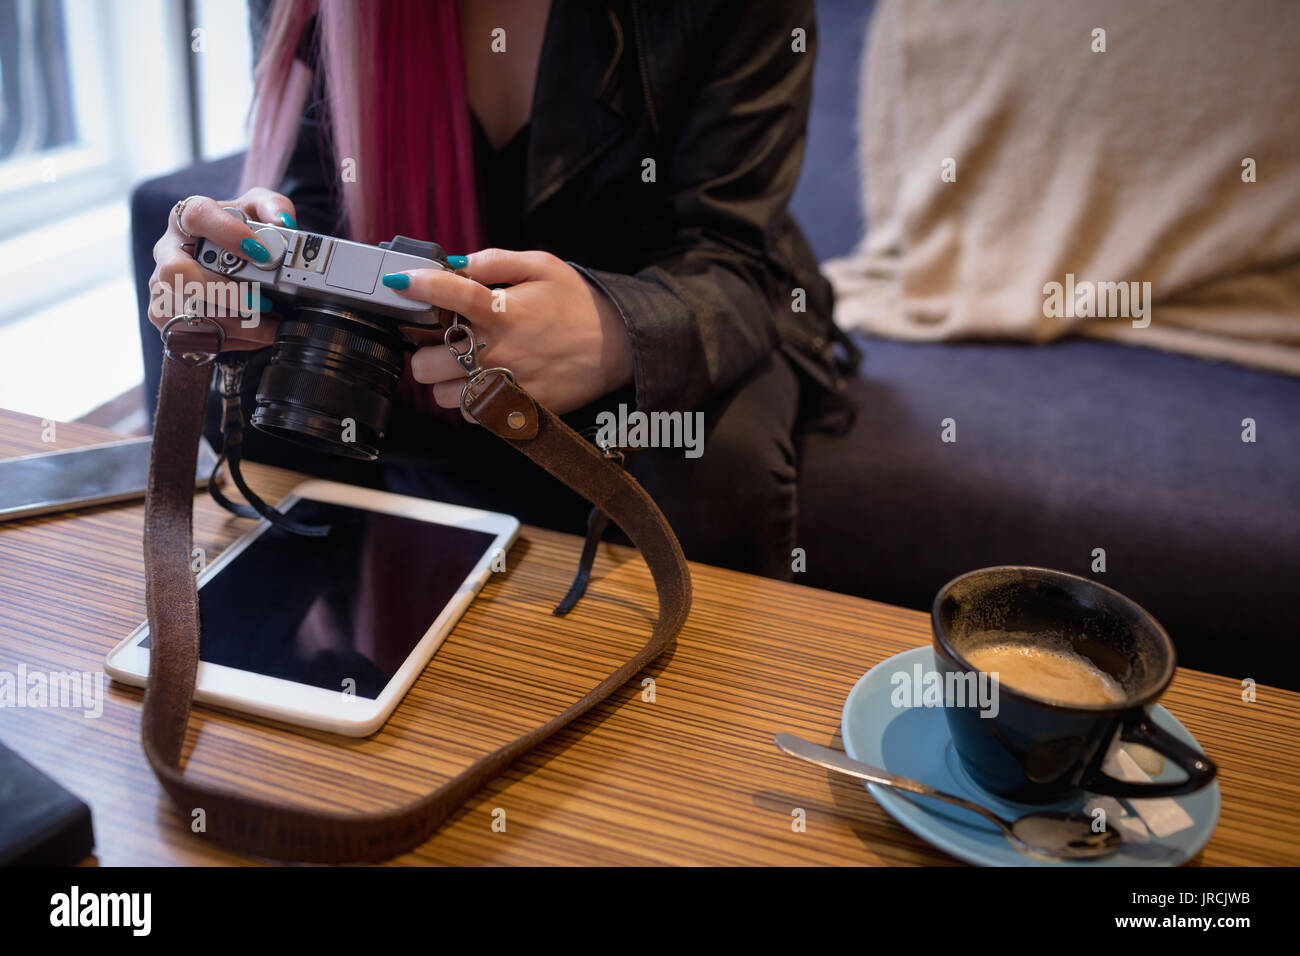 Mid section of woman reviewing pictures on digital camera in cafe - Stock Image